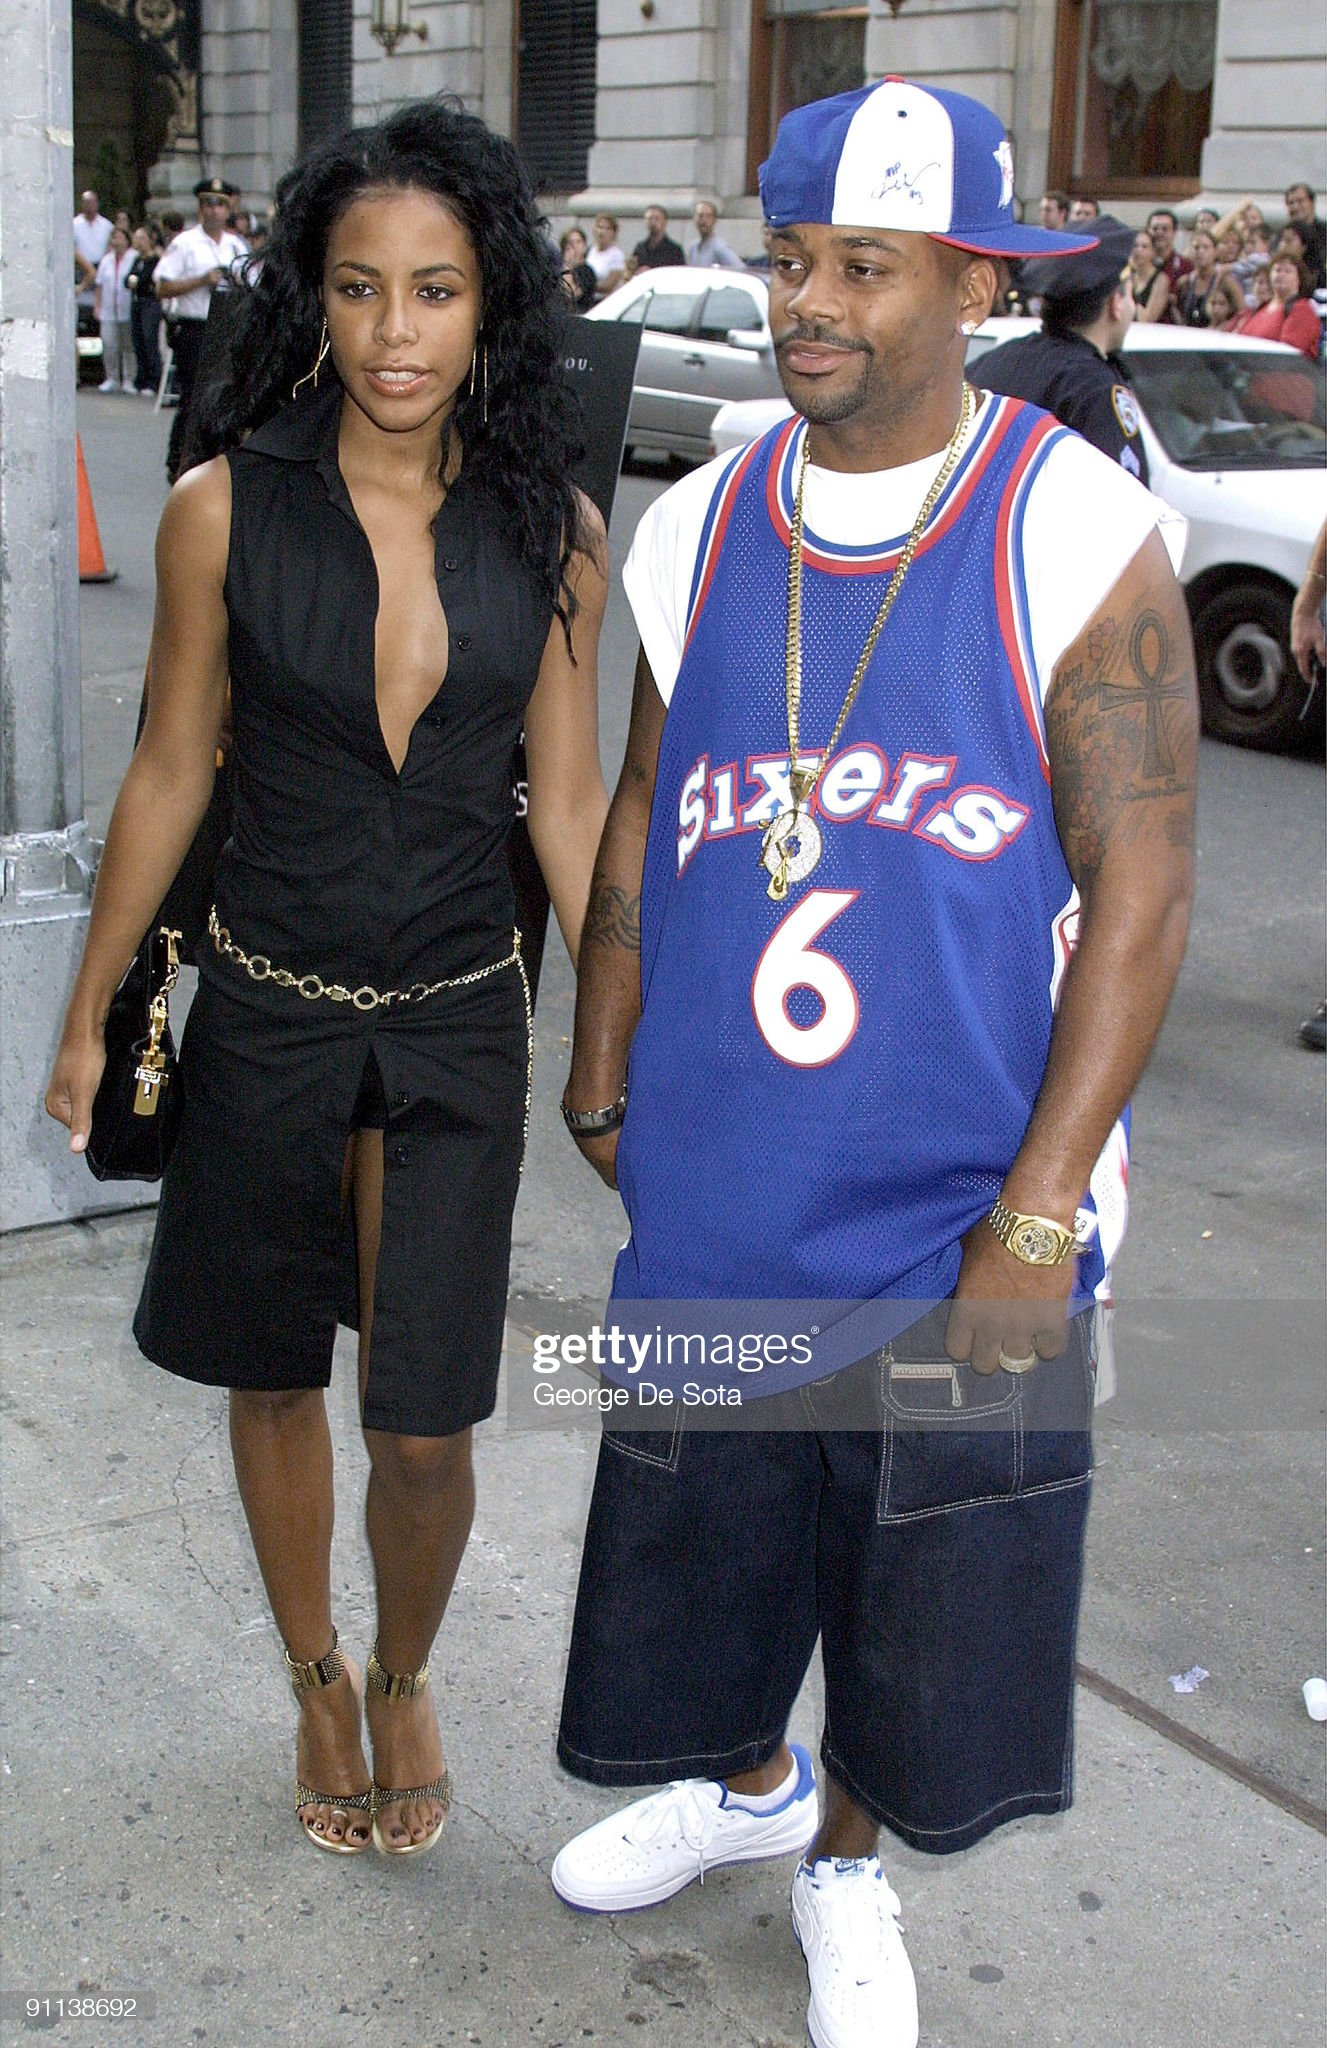 ¿Cuánto mide Aaliyah Haughton? - Altura - Real height Photo-of-aaliyah-and-damon-dash-with-damon-dash-picture-id91138692?s=2048x2048